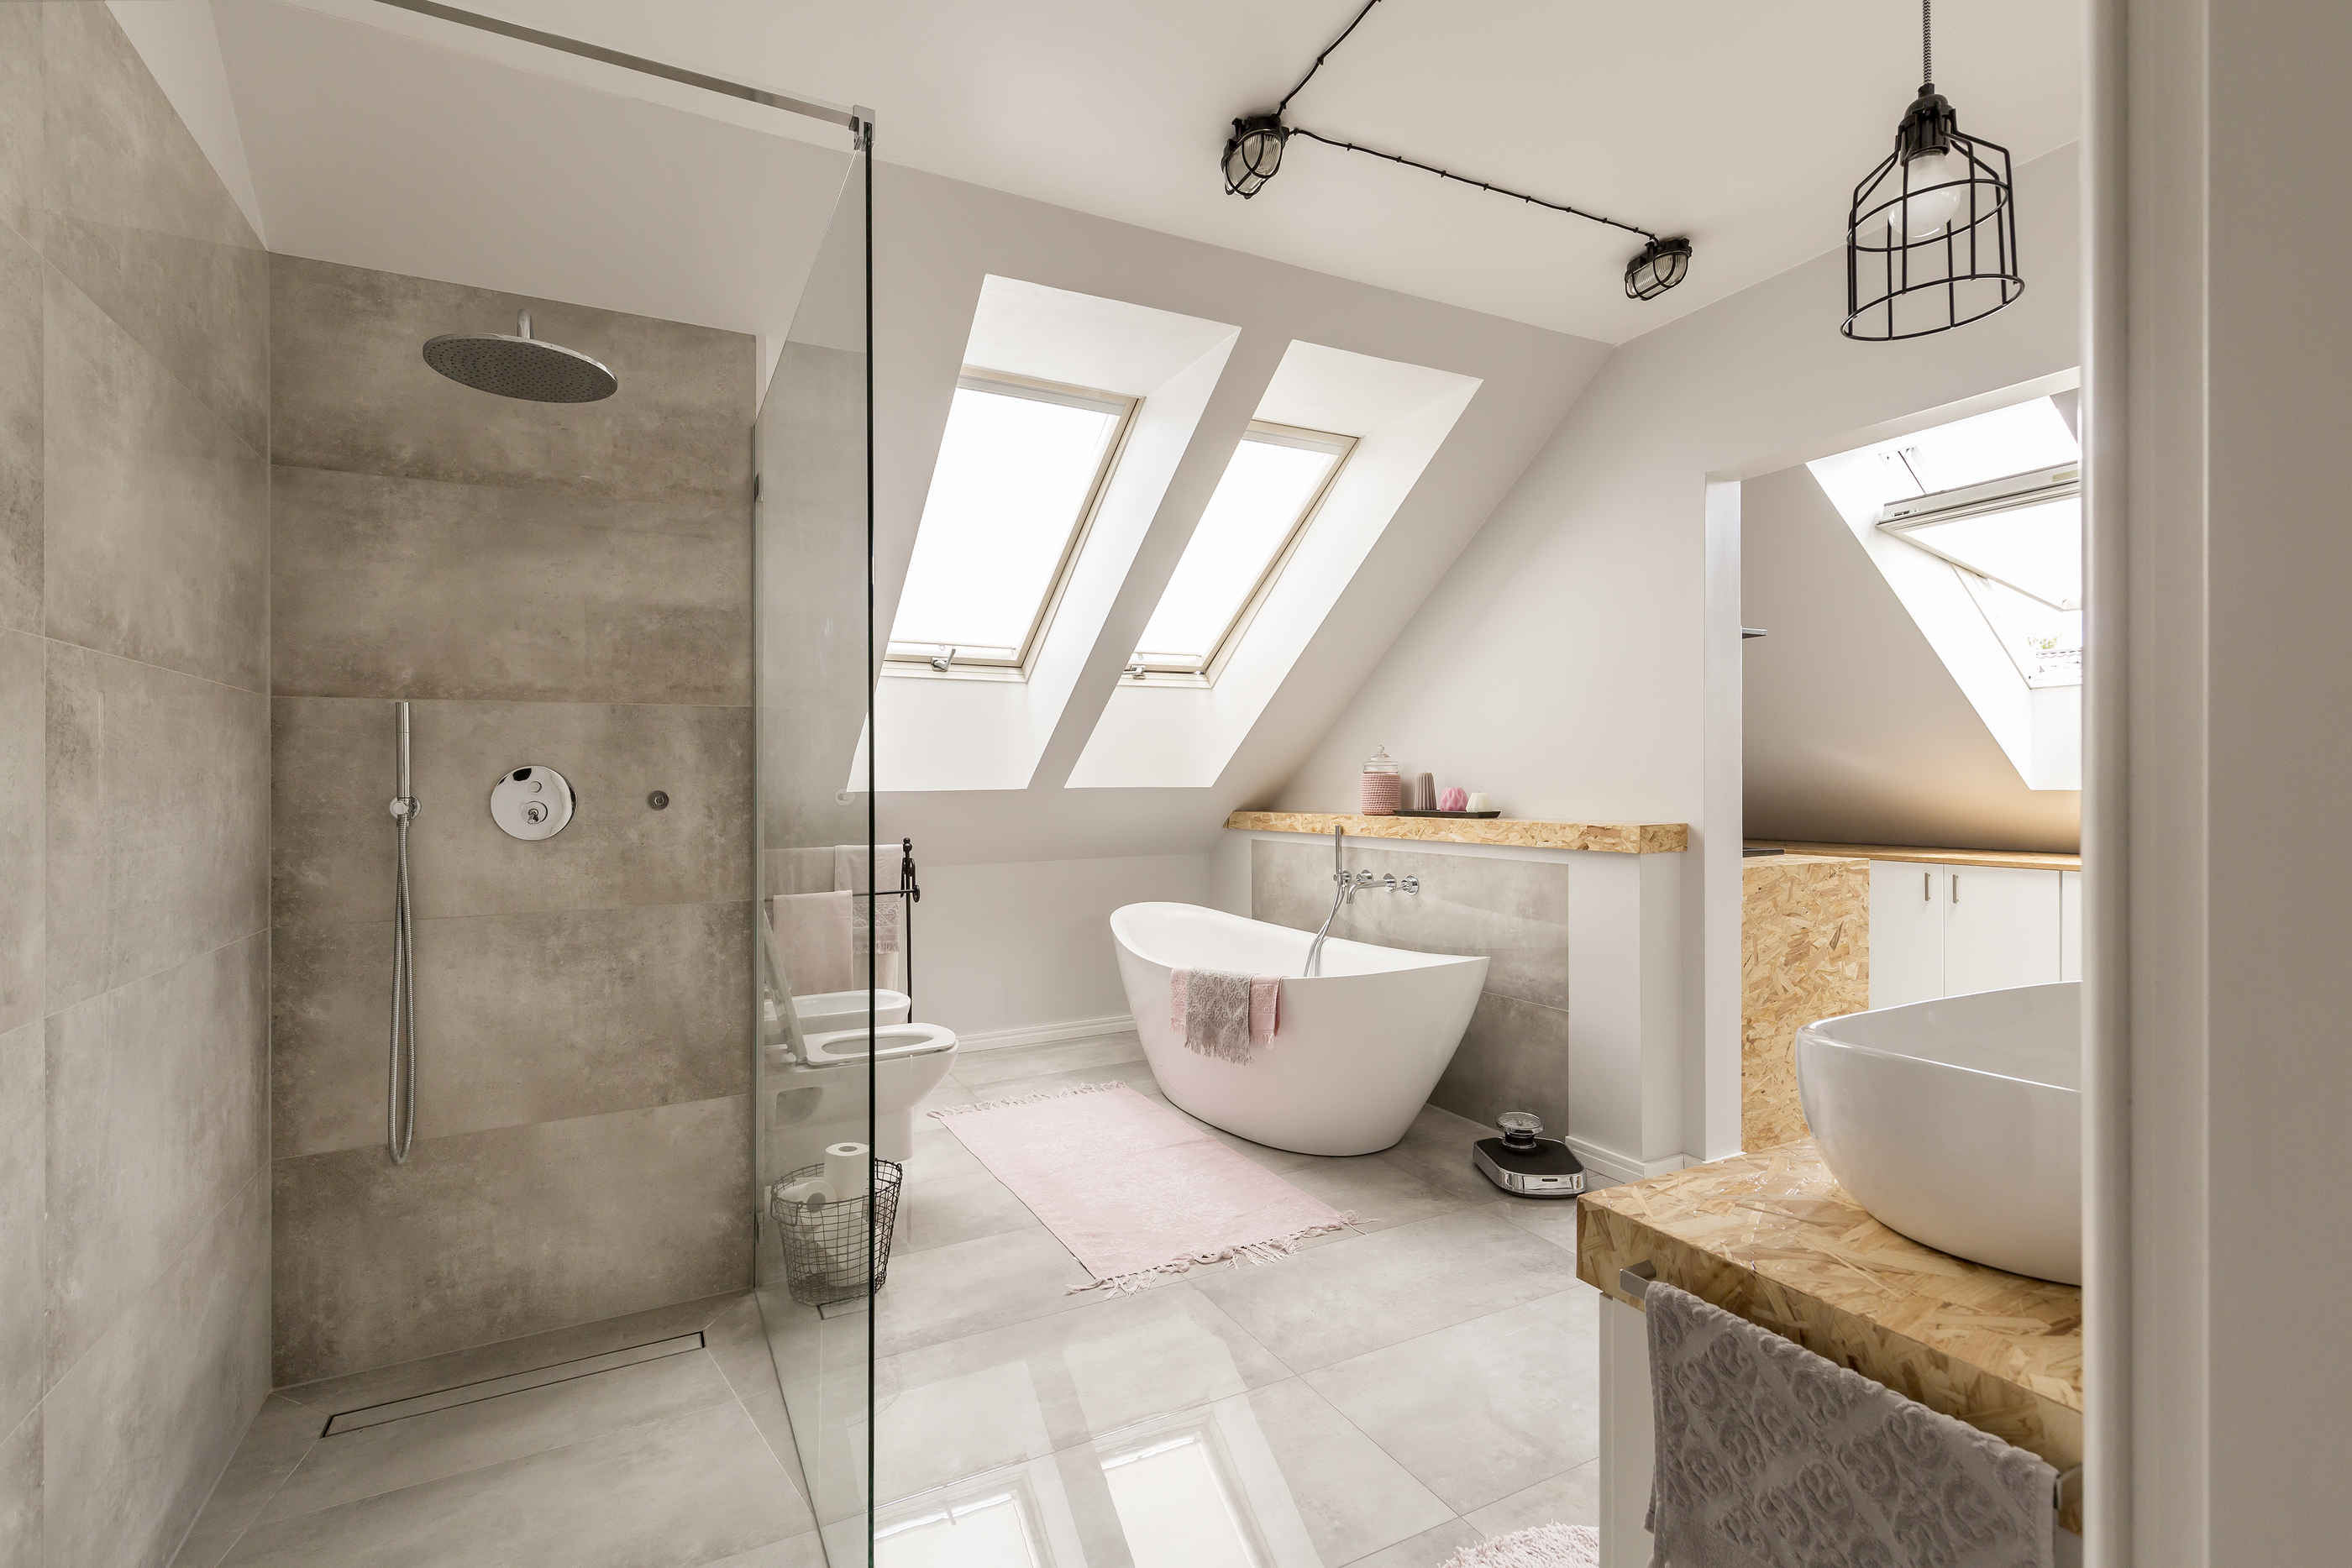 luxury bathroom, bathroom wokingham, bathroom refurbishment camberley, basikngstoke,  BATH SHOWER WETROOM